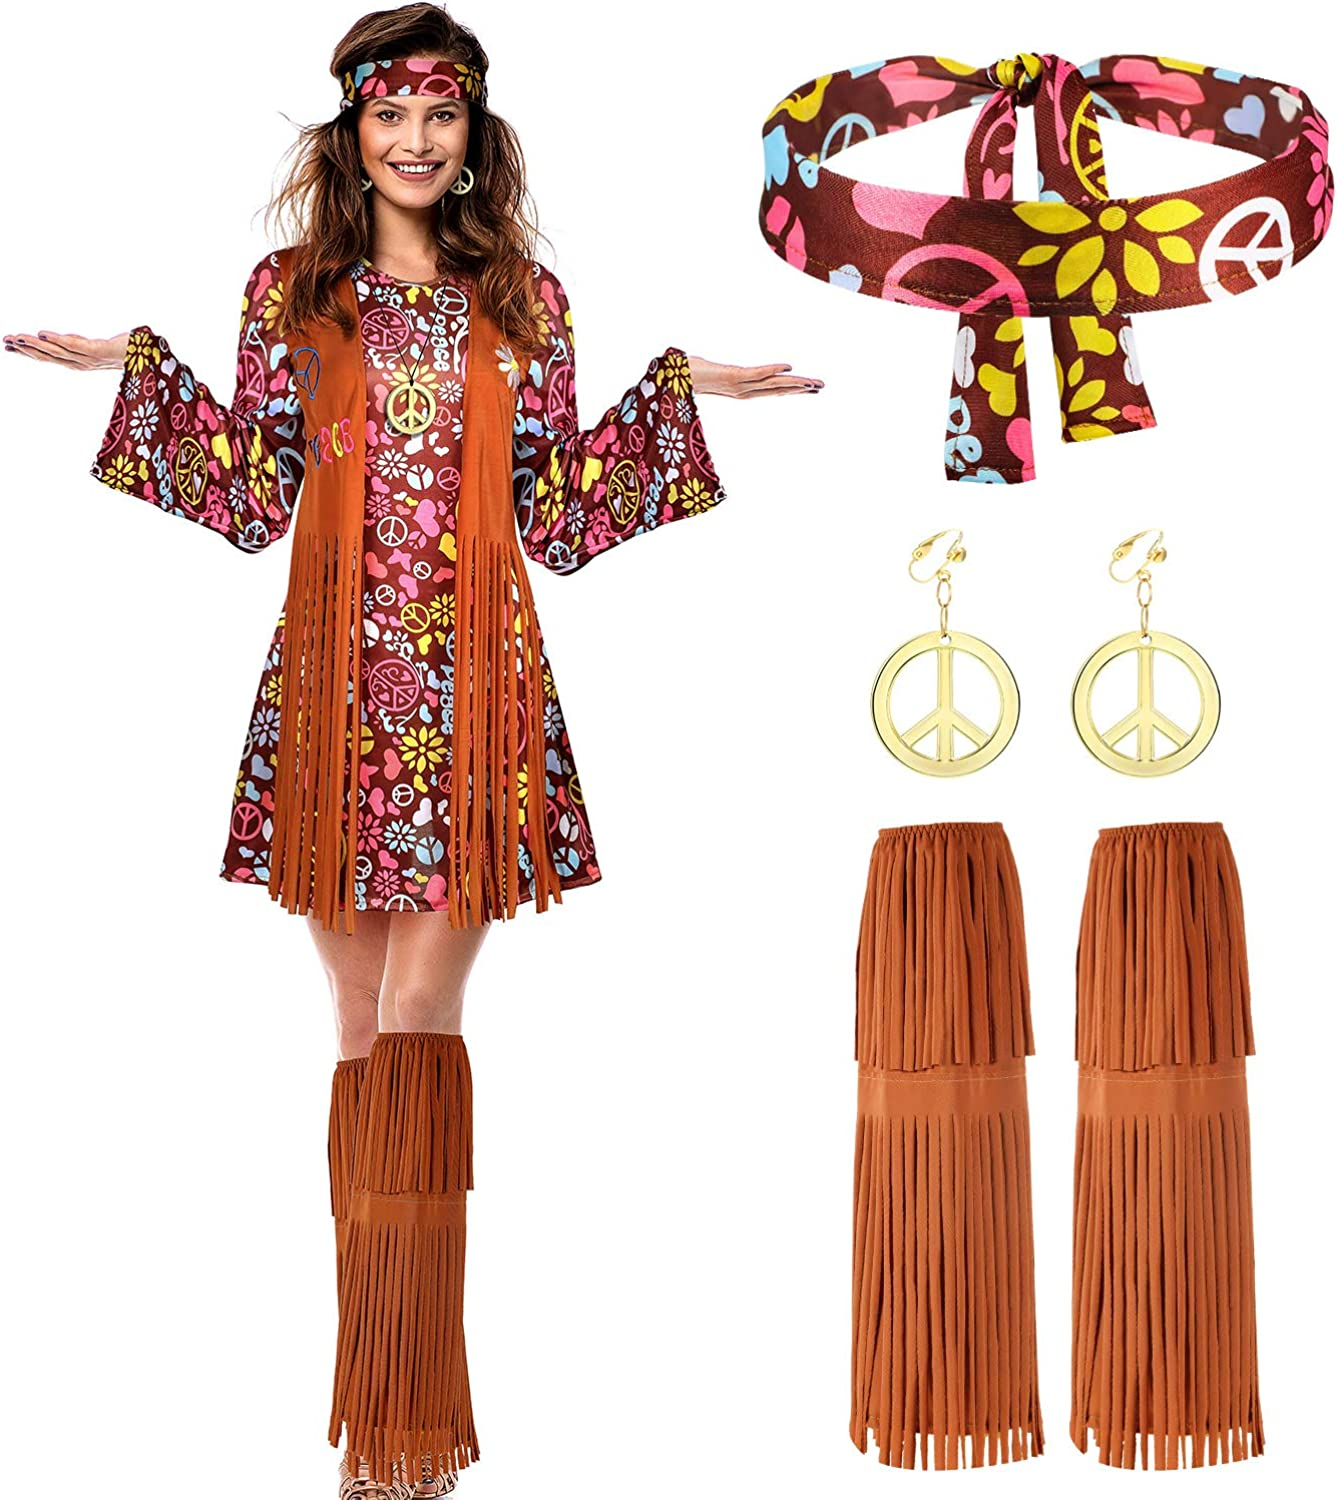 Women Indefinitely Hippie Costume Set Peace Earring Dr Necklace Super sale period limited Sign Headband